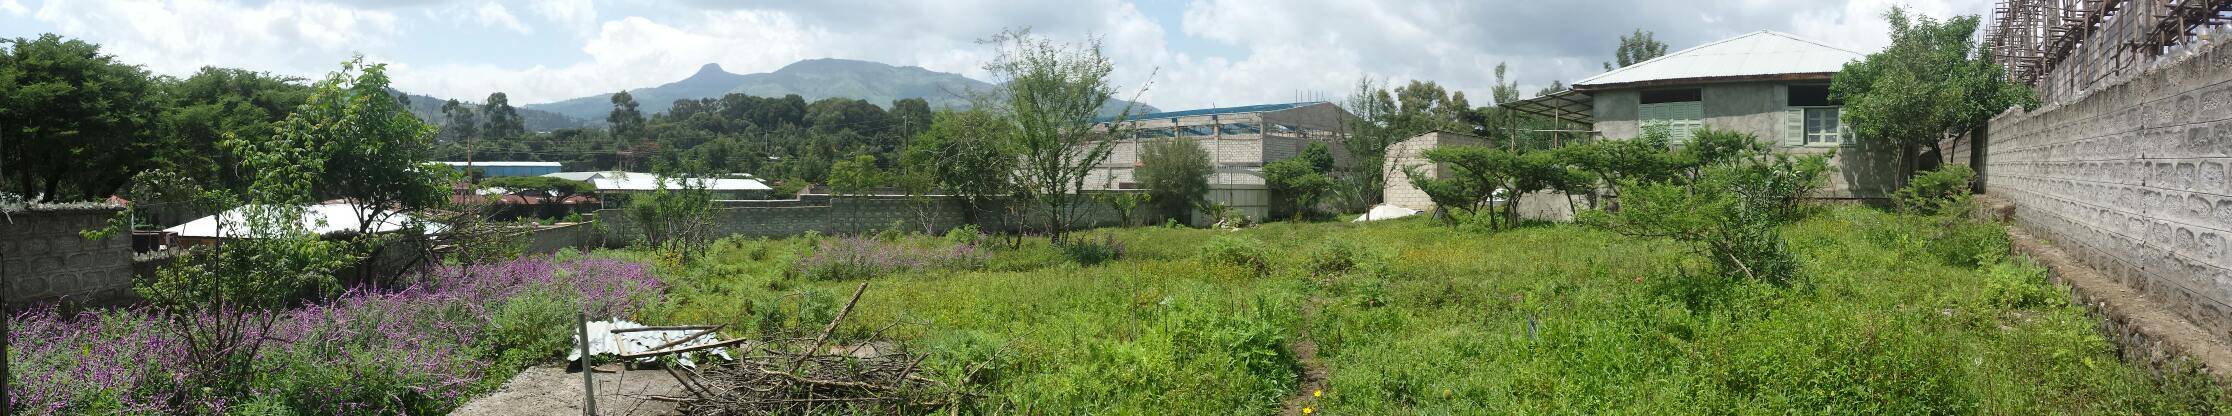 Land for Sale in Sebeta Industrial Zone